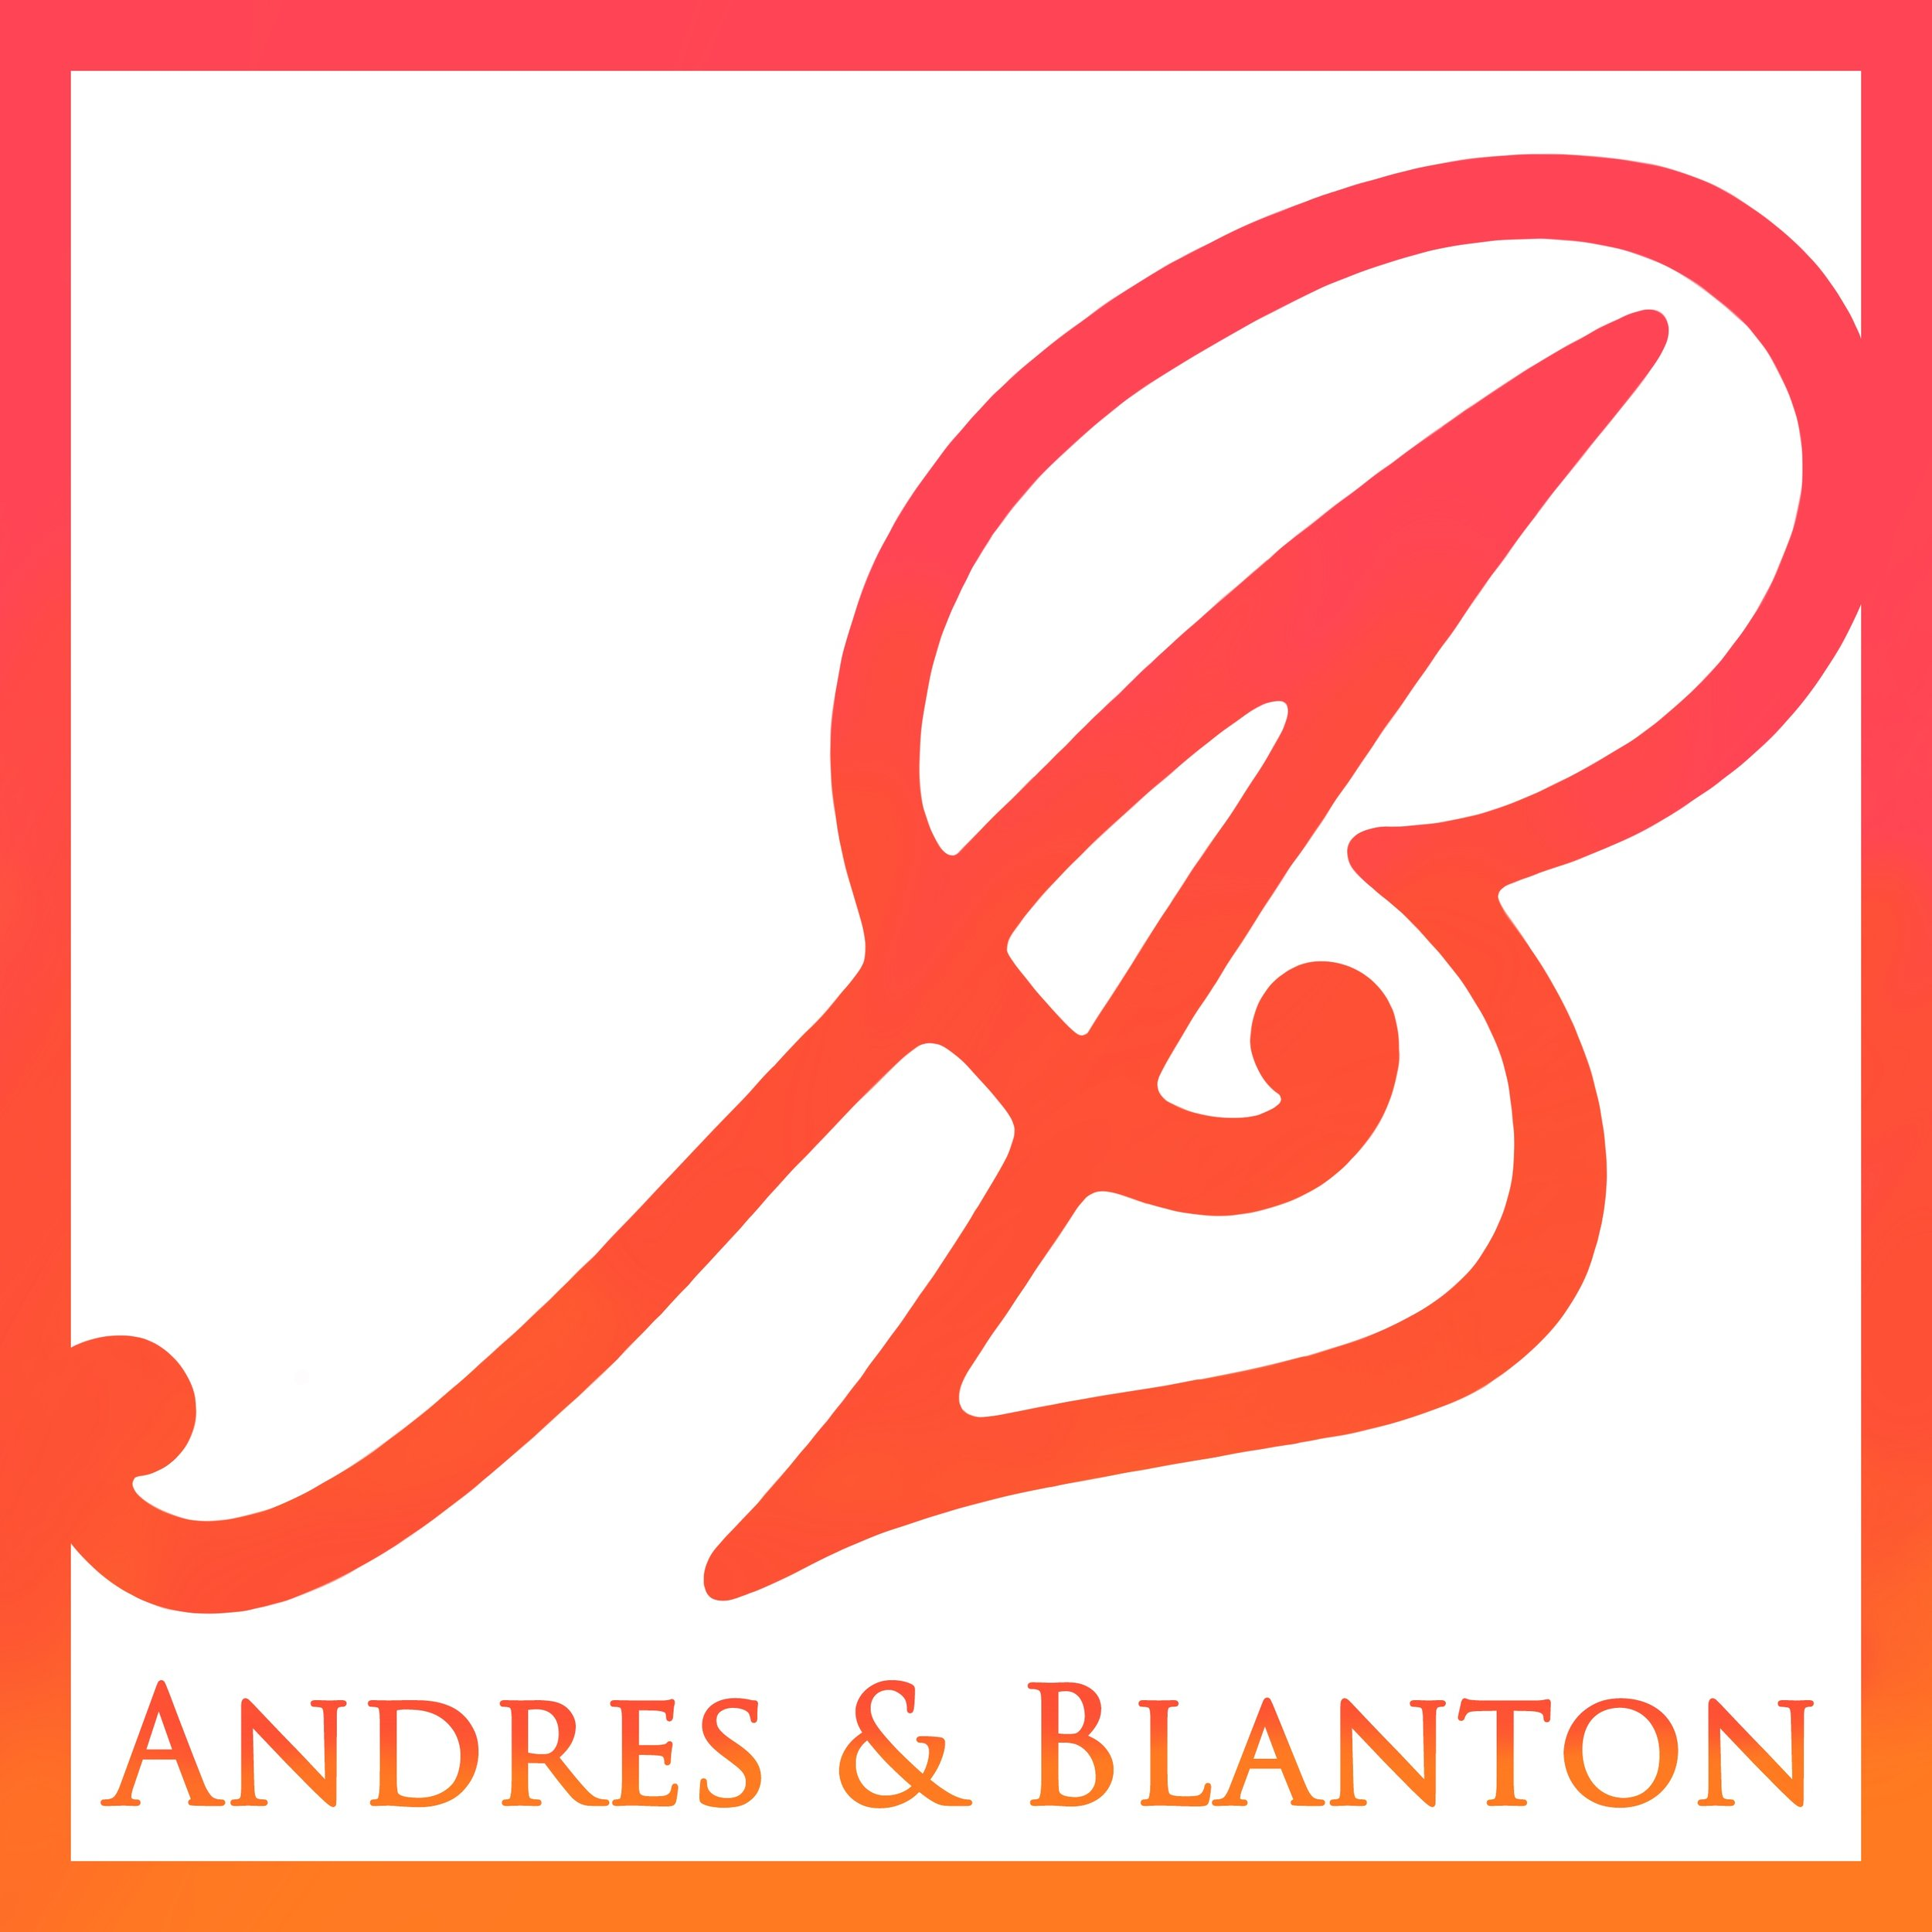 - Andres & Blanton Publishing is an independent publishing house committed to producing books that entertain and edify.For inquiries, click here or email contact@andresblanton.com.